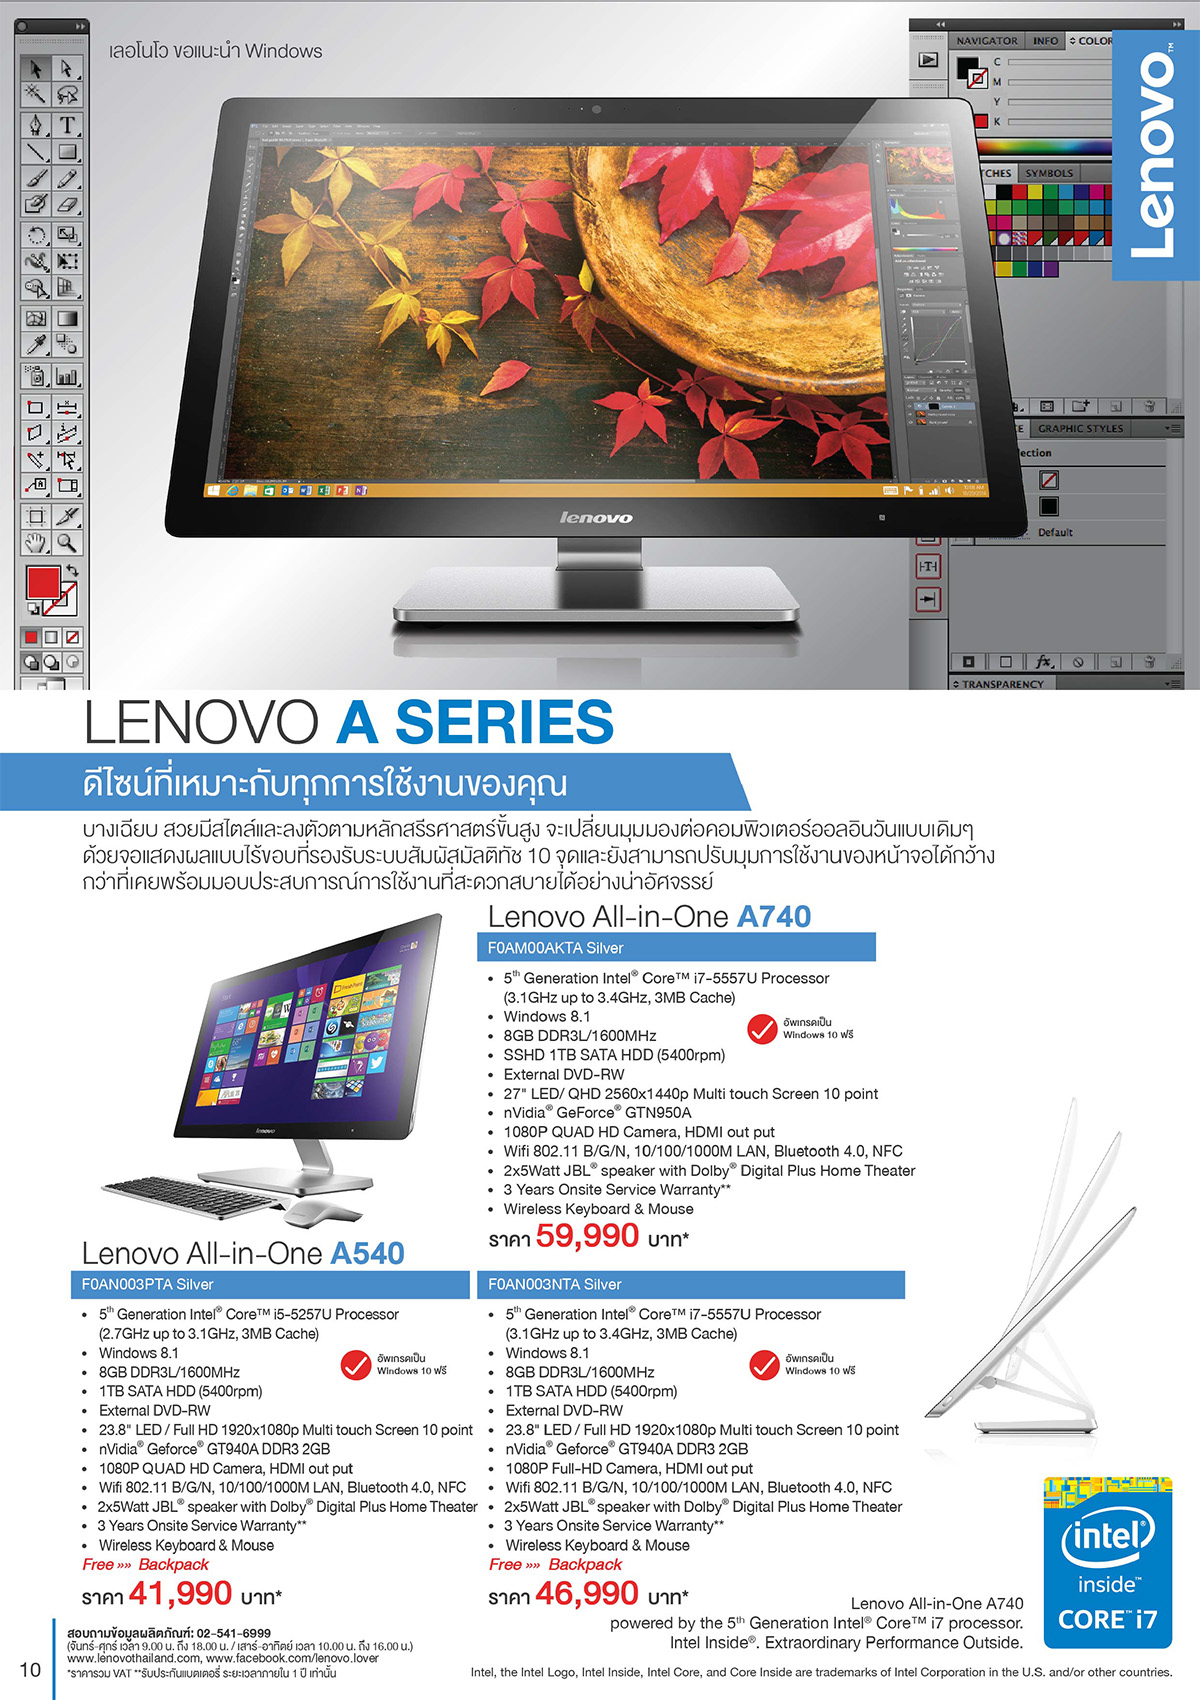 Lenovo Consumer Product Catalog Q2FY15_Final AW-10